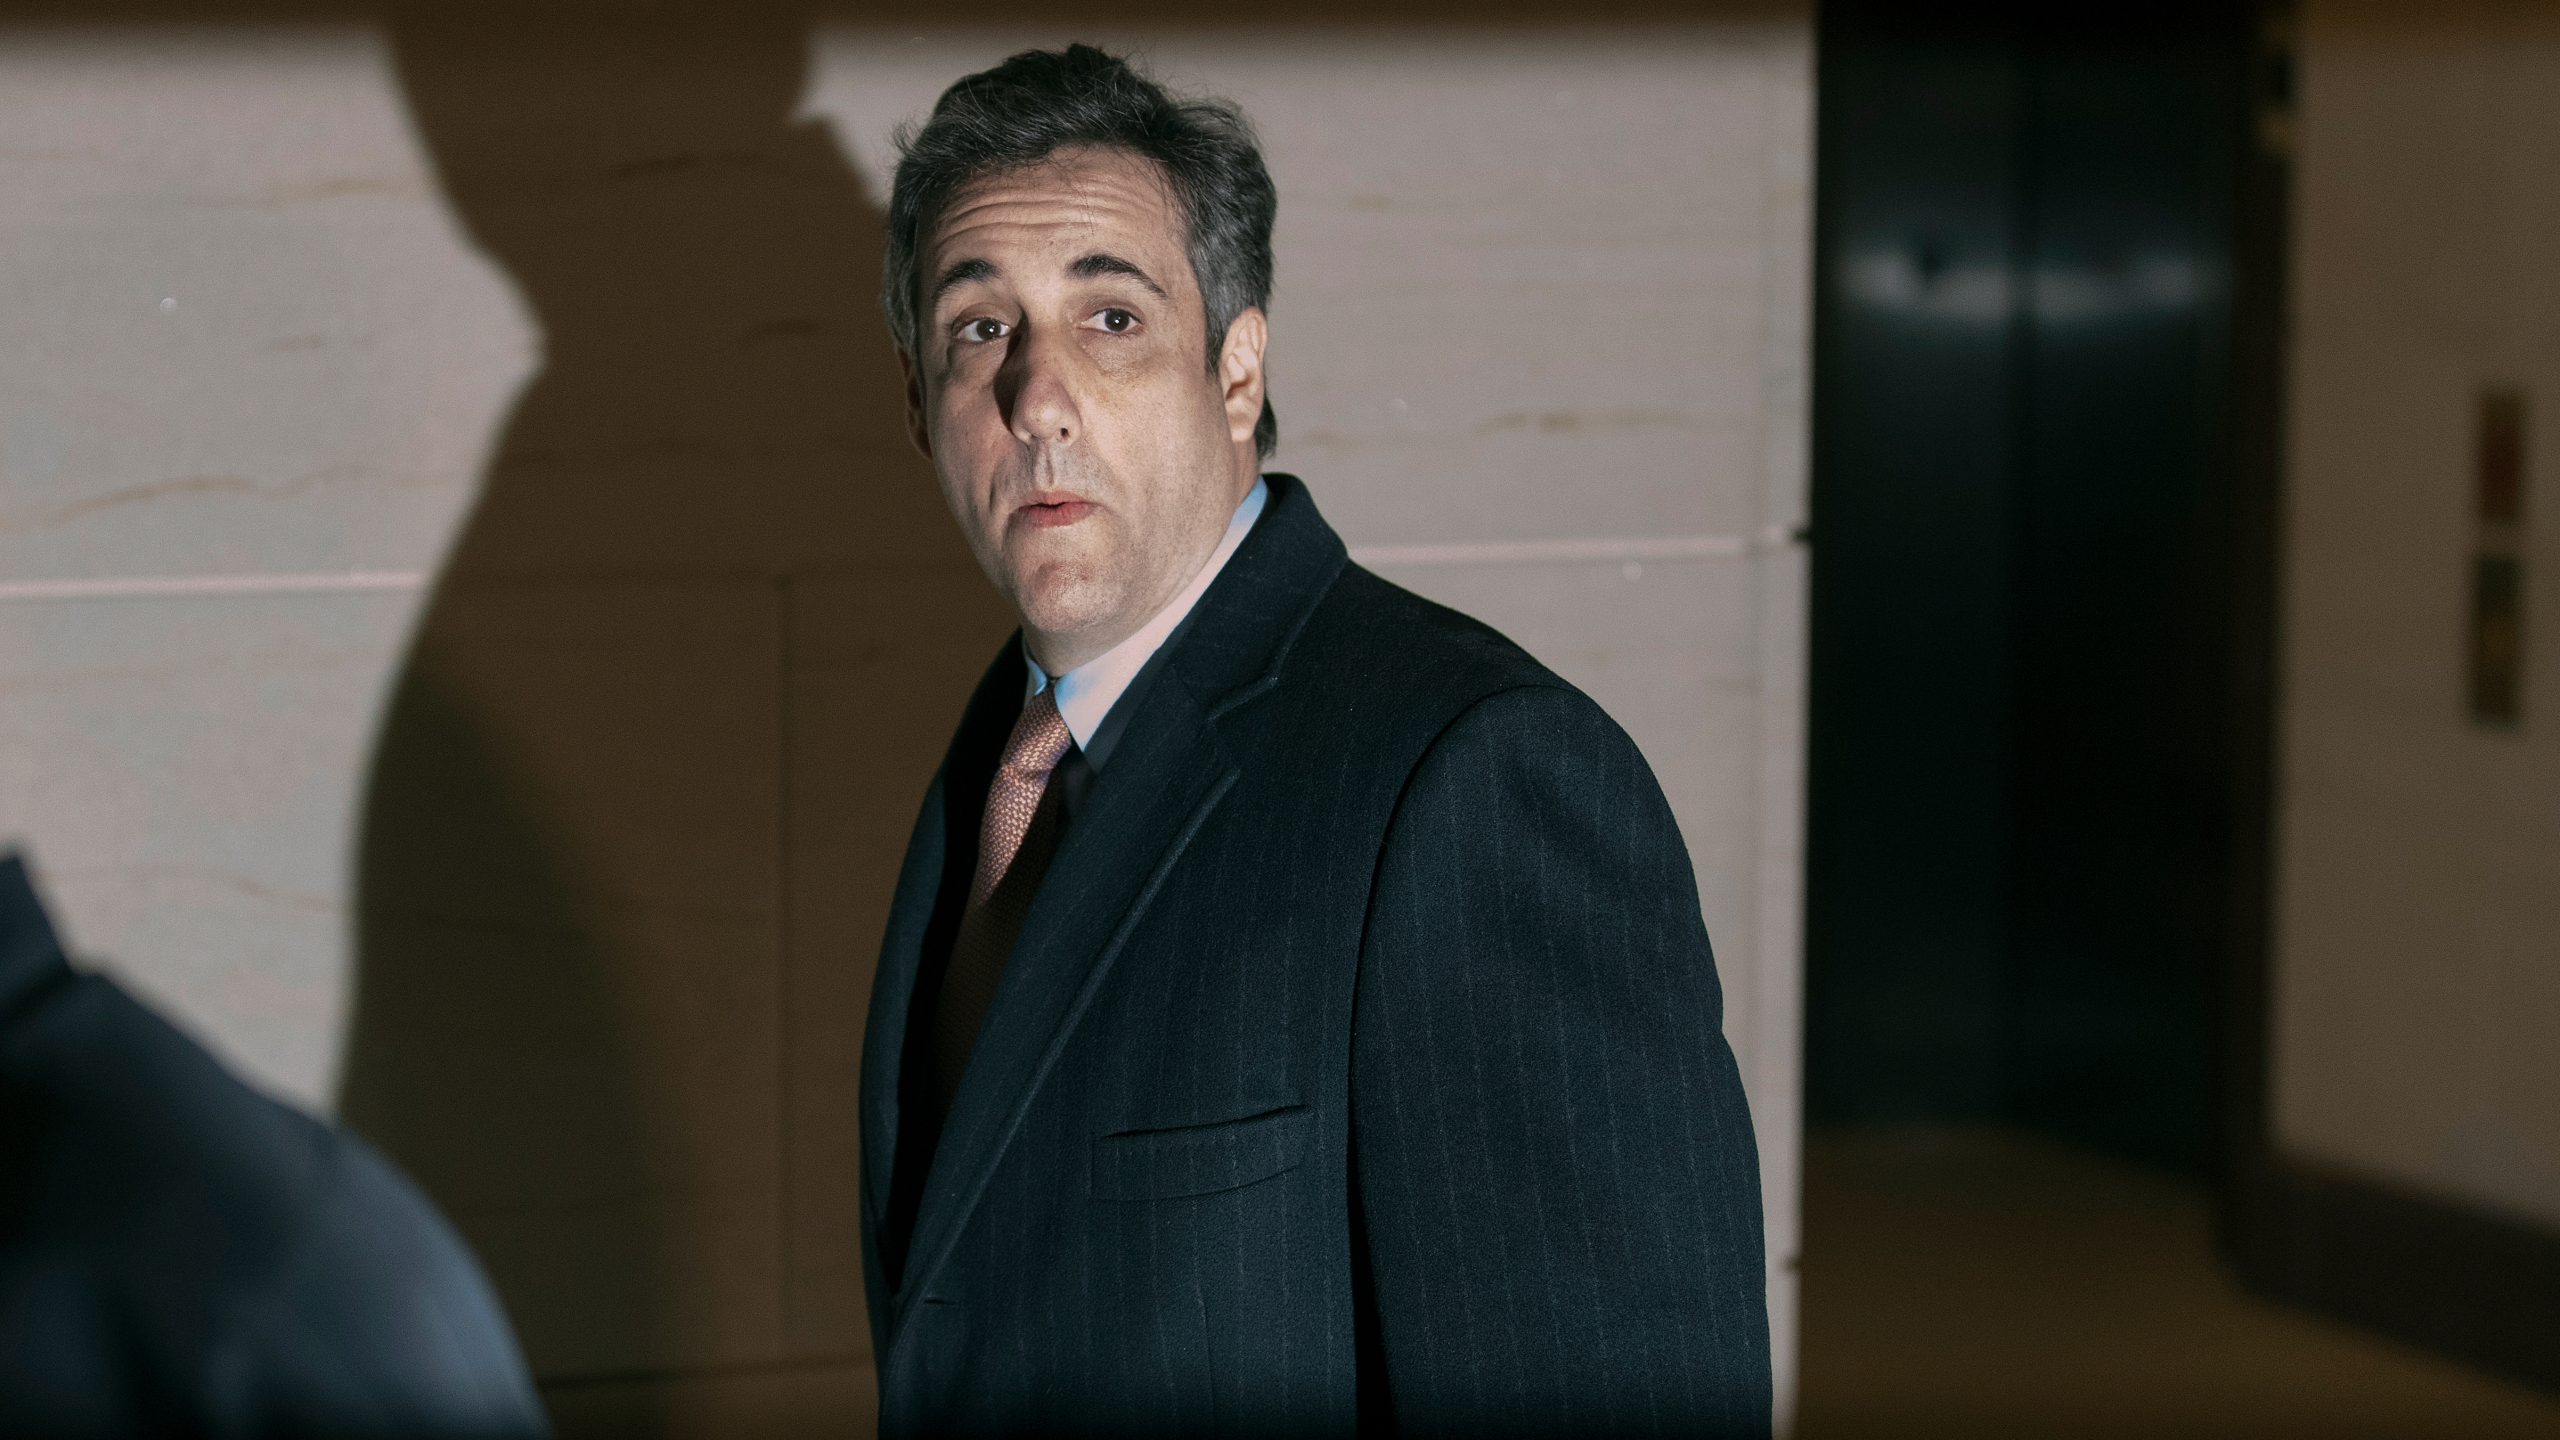 Michael Cohen, former attorney and fixer for President Donald Trump, arrives at the secure offices of the House Intelligence Committee in the basement of the House Visitors Center at the U.S. Capitol March 6, 2019 in Washington, D.C. (Credit: Chip Somodevilla/Getty Images)